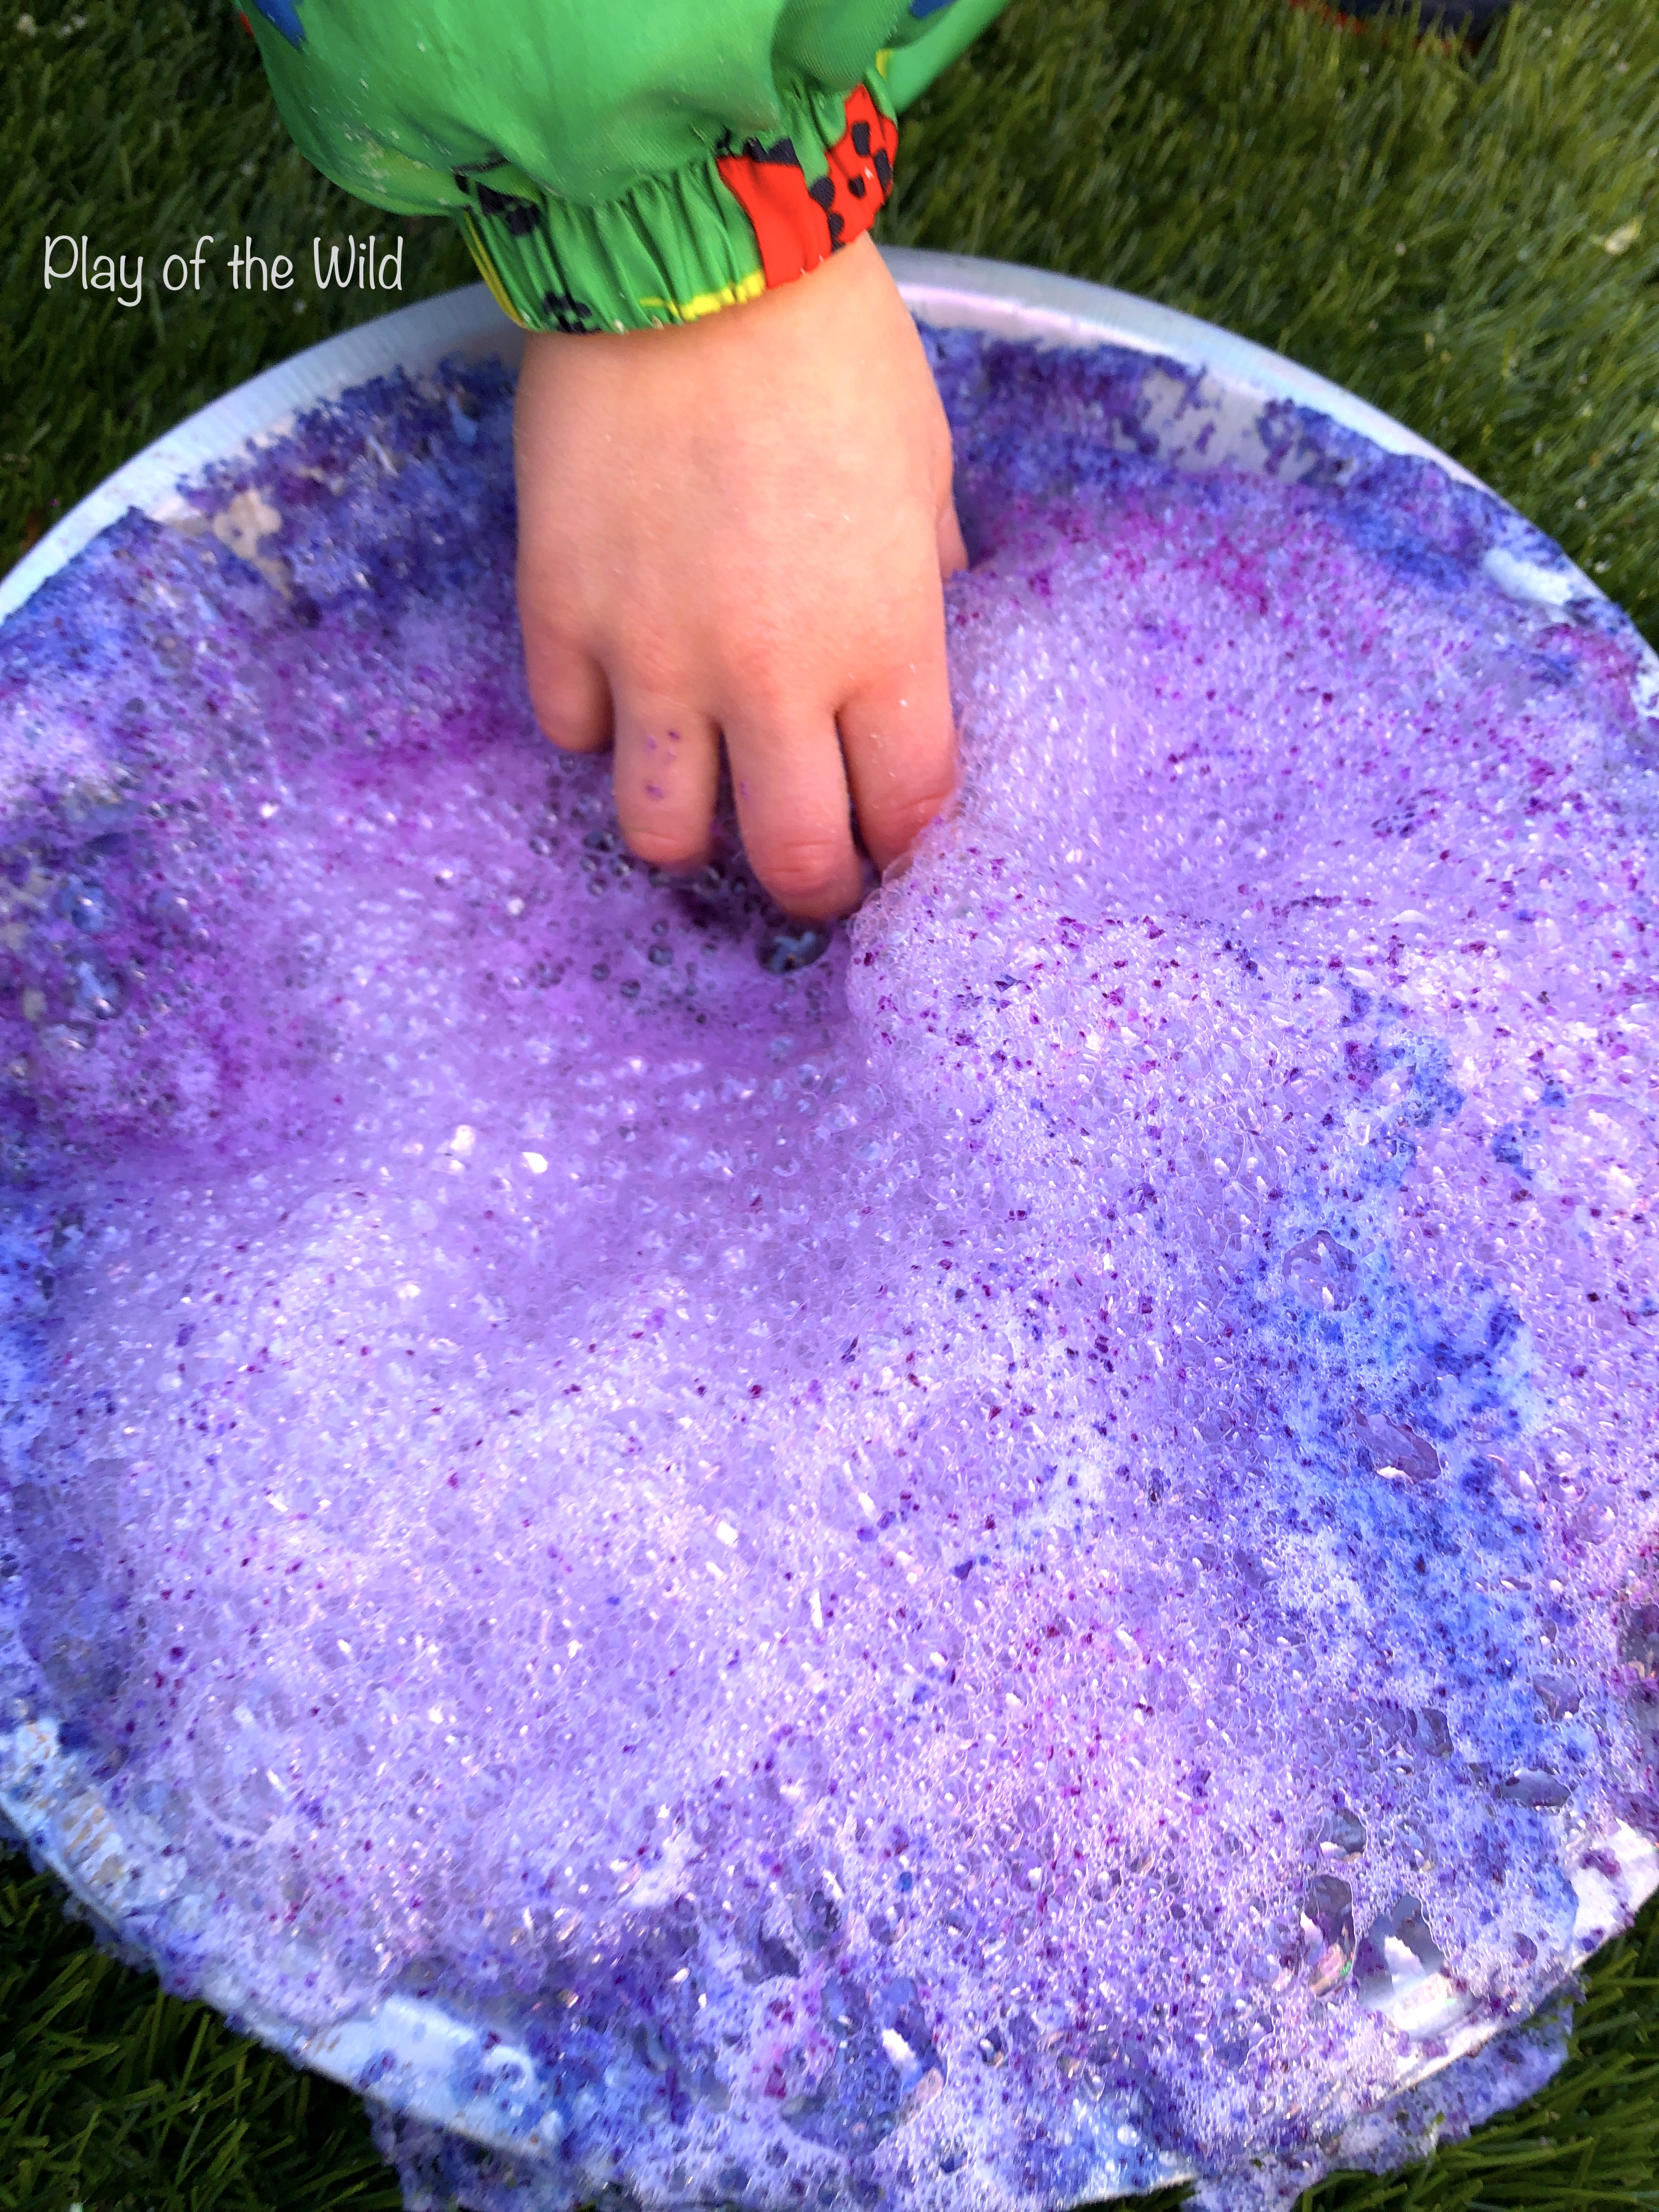 baking soda and vinegar science experiment for kids - colour changing